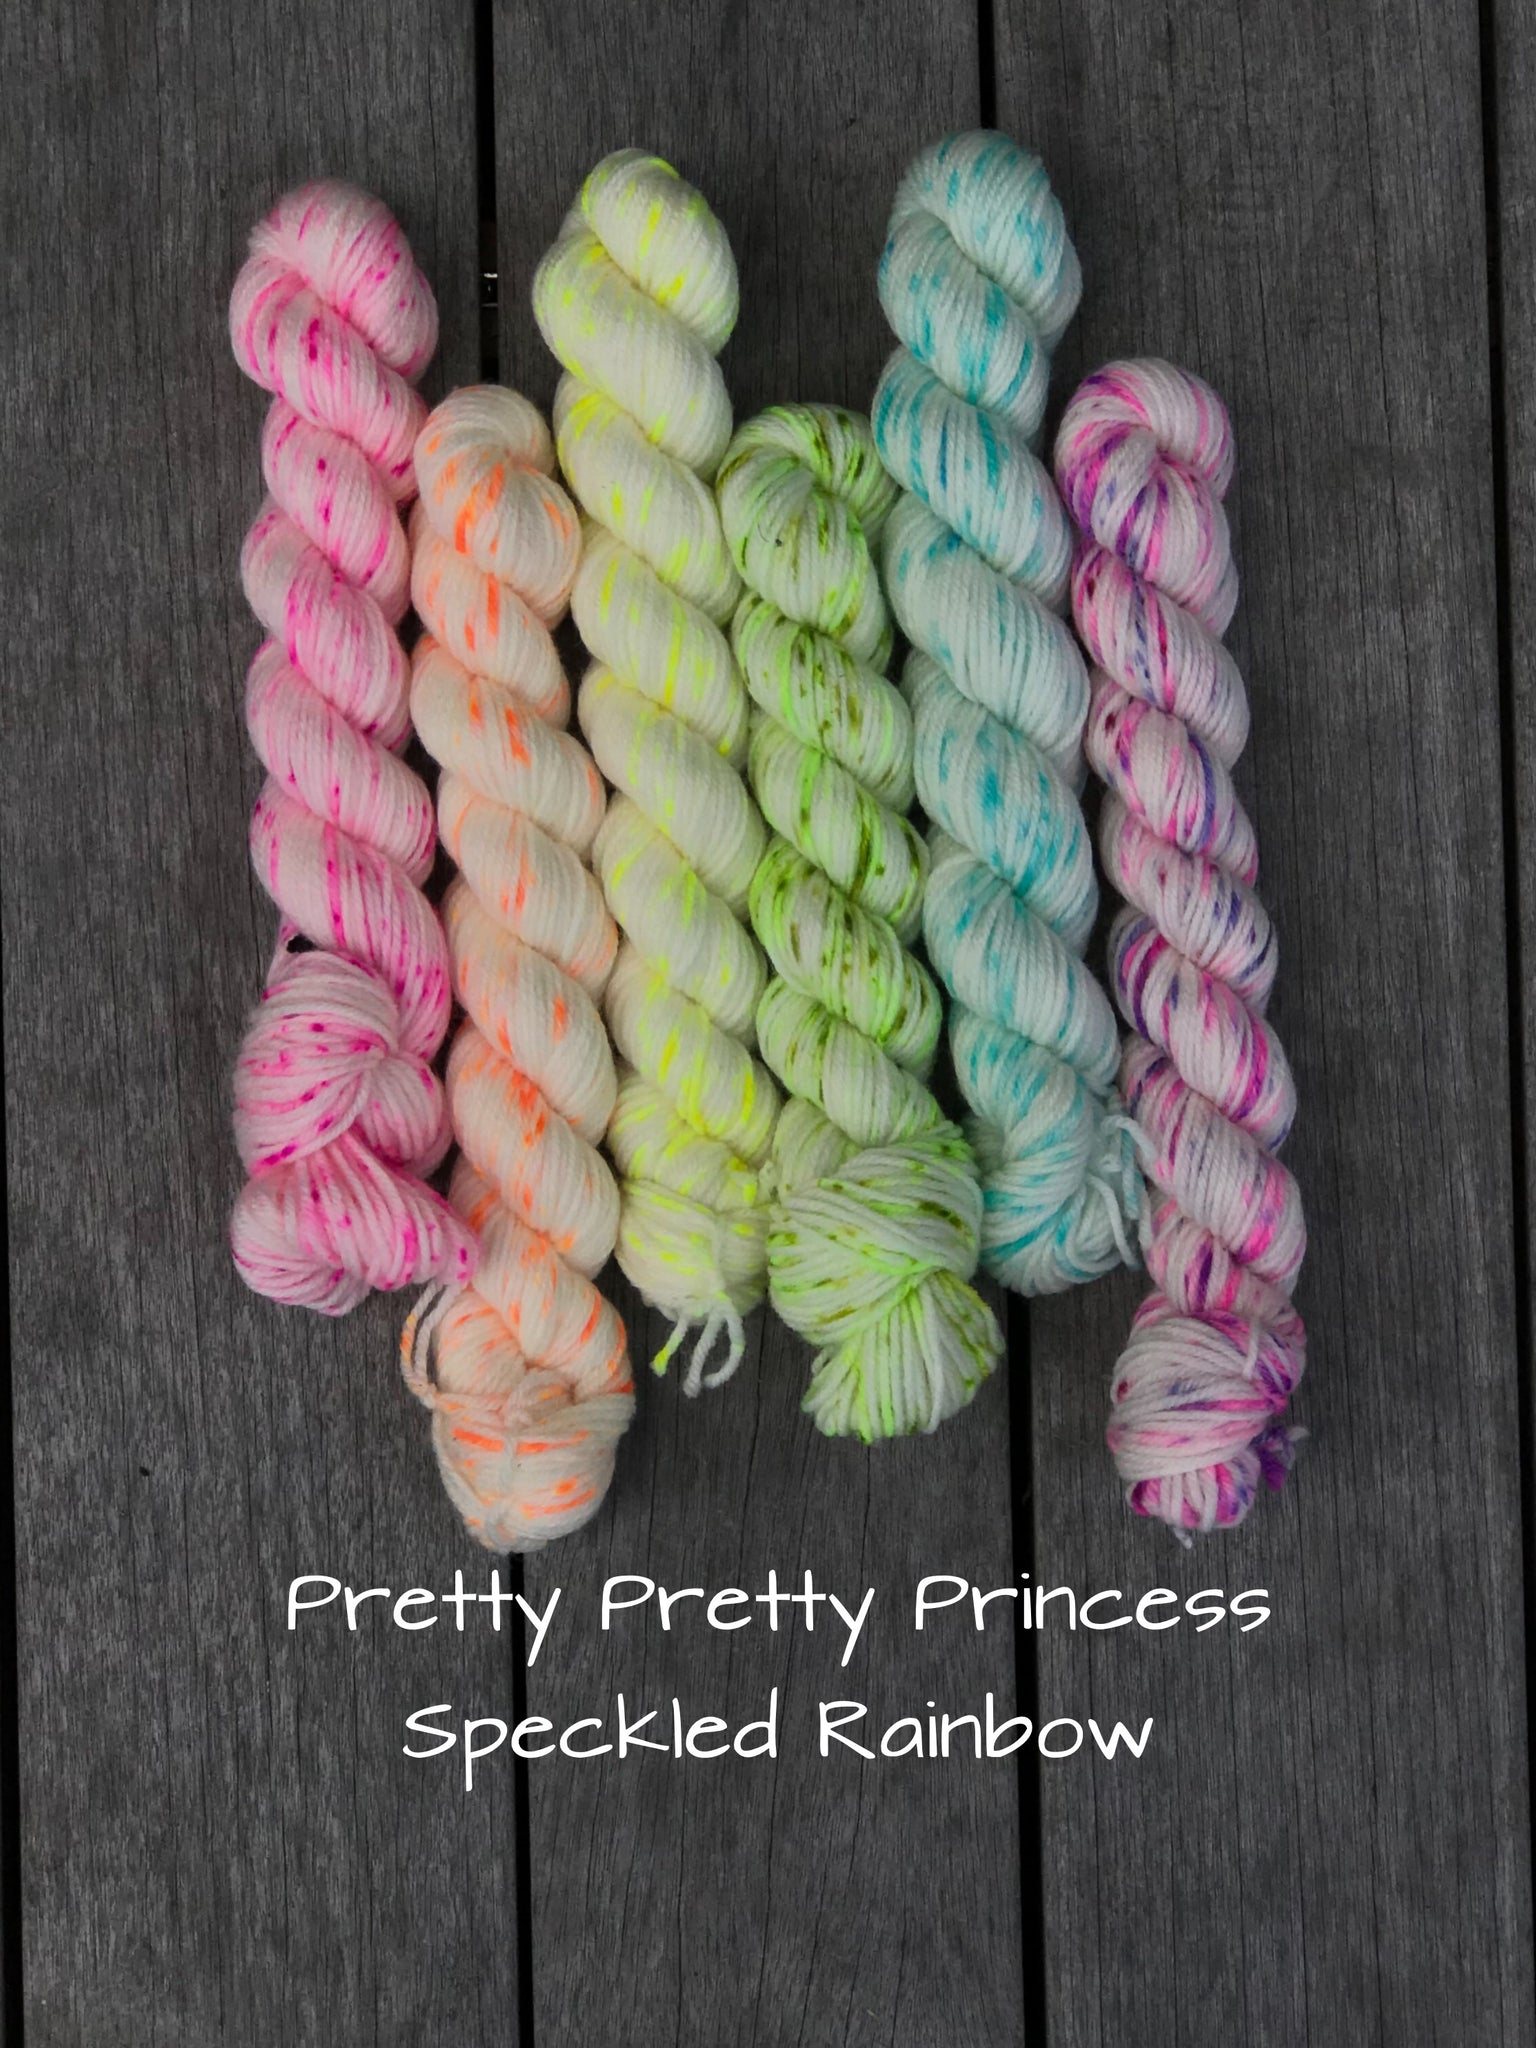 Pretty Pretty Princess Speckled Rainbow Mini Skein Kit